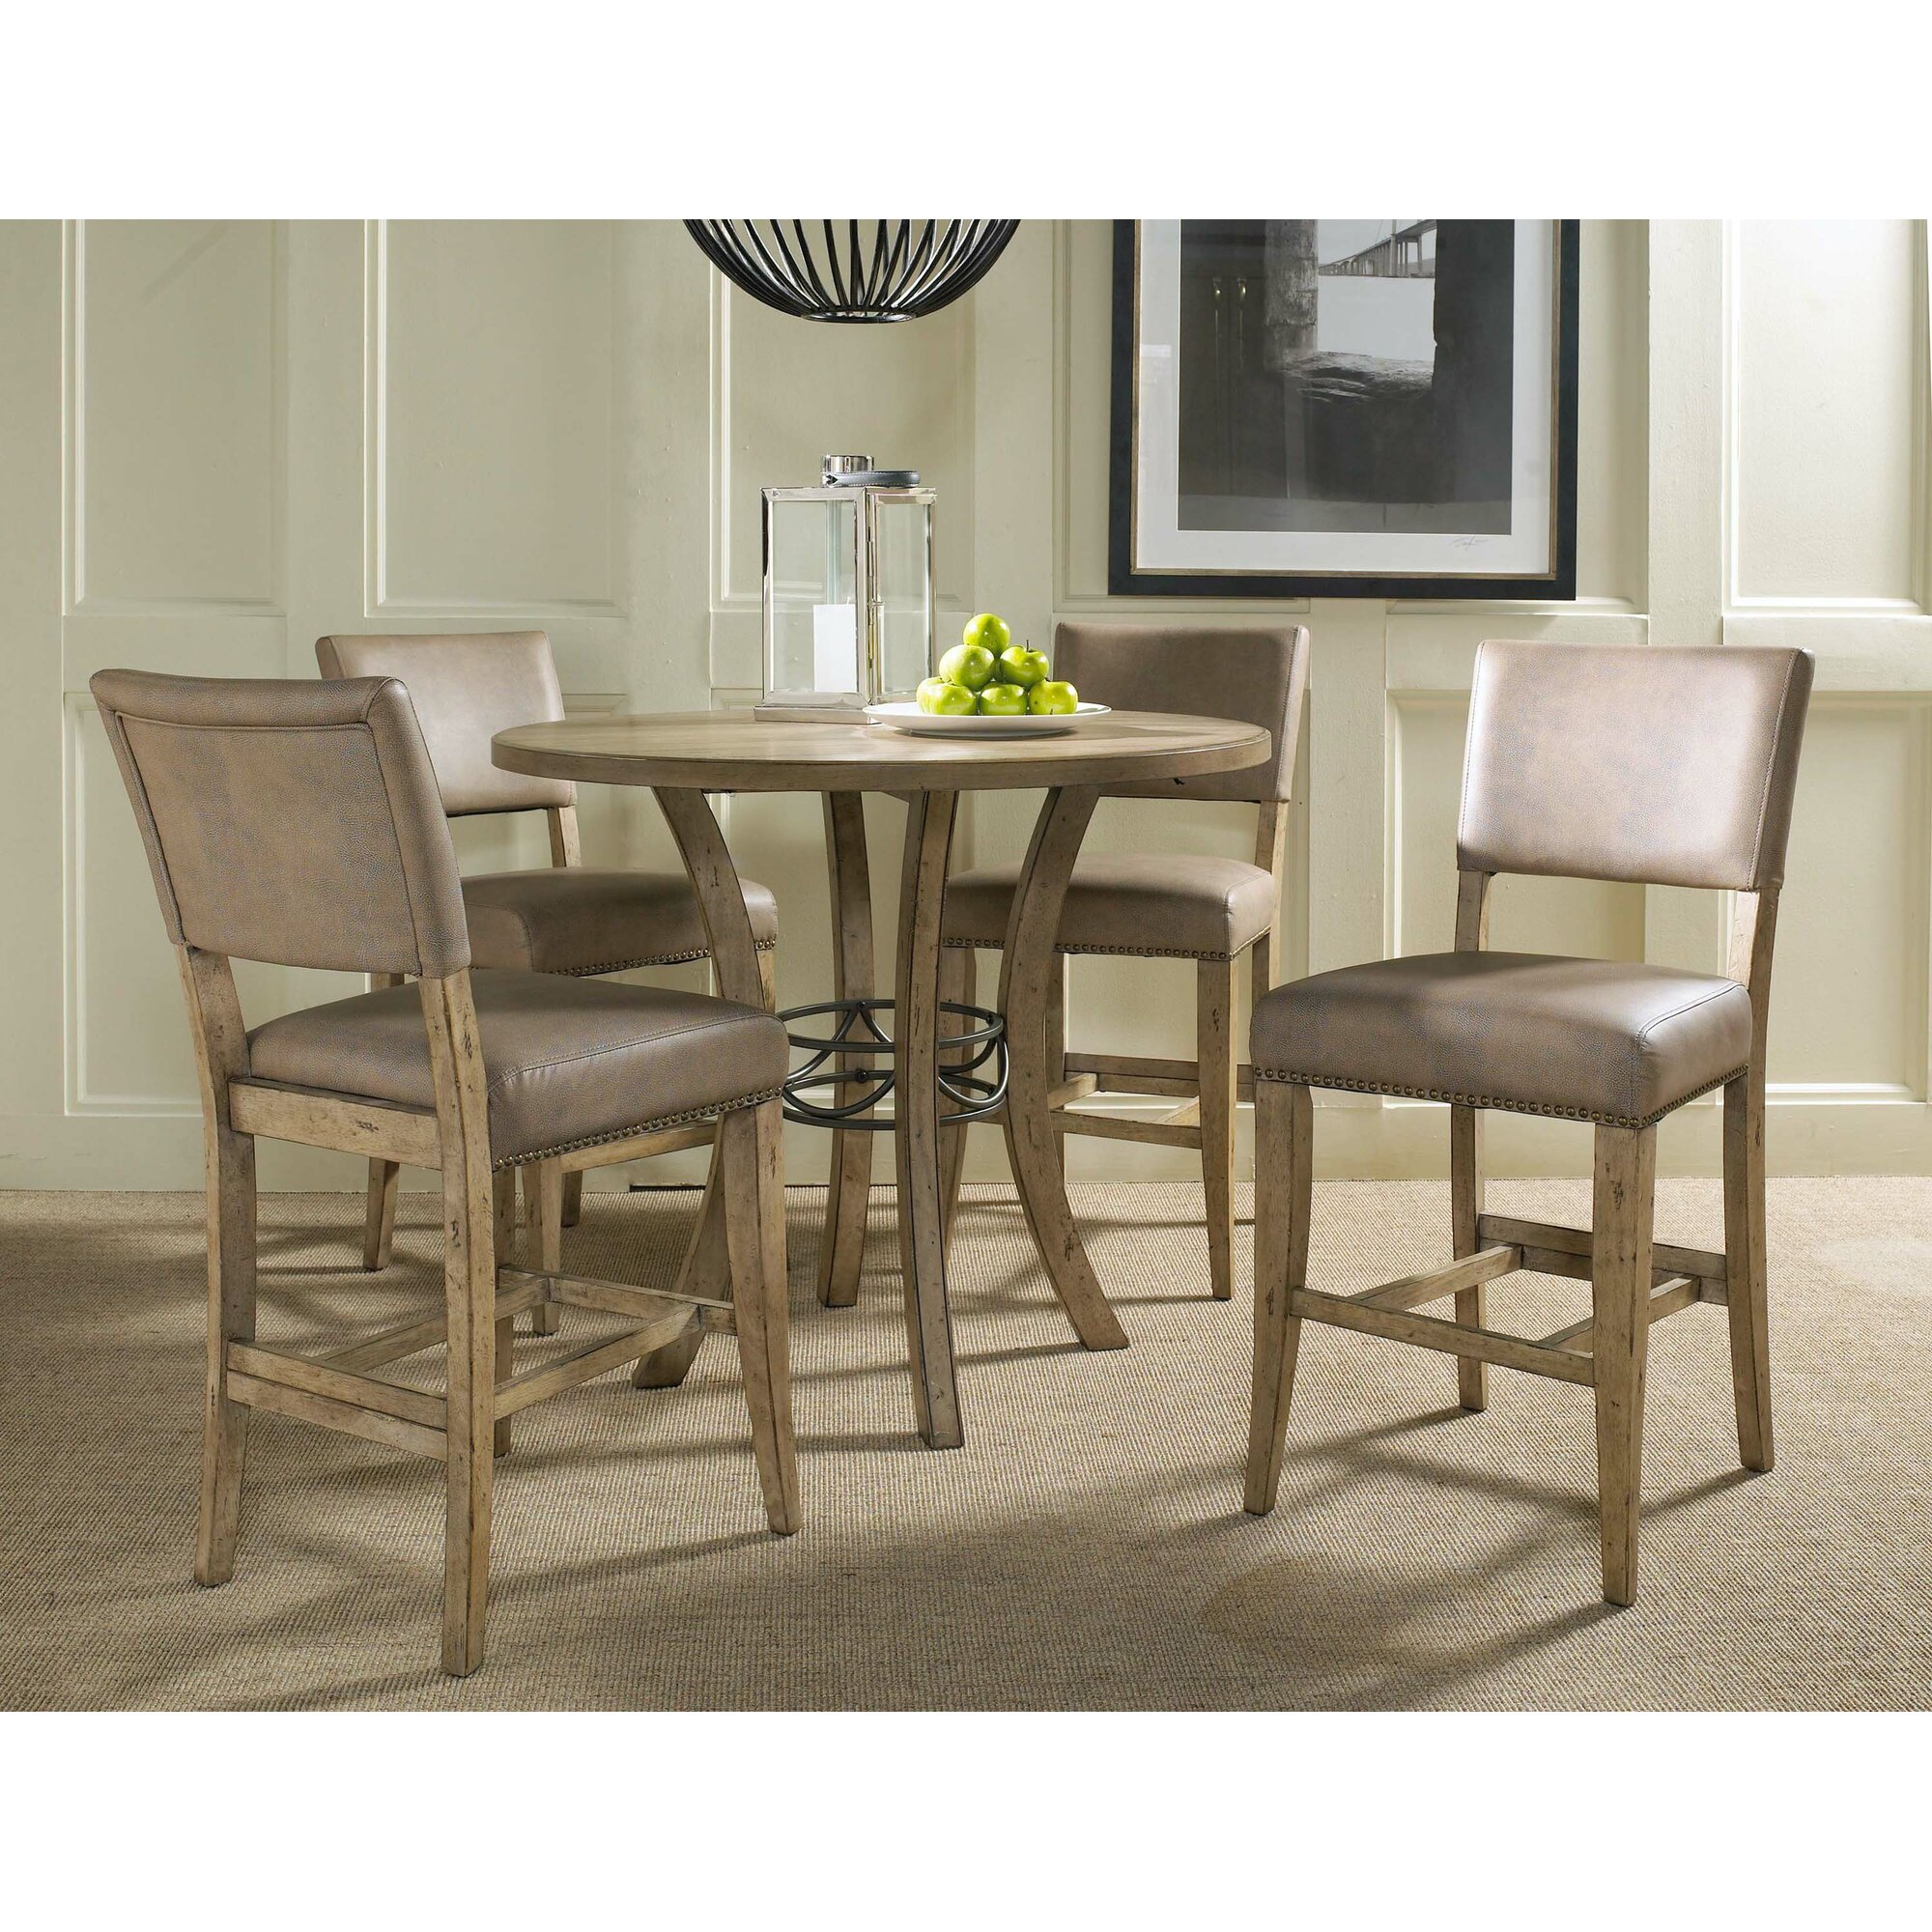 charleston 5 piece round counter height dining set - Height Dining Room Table